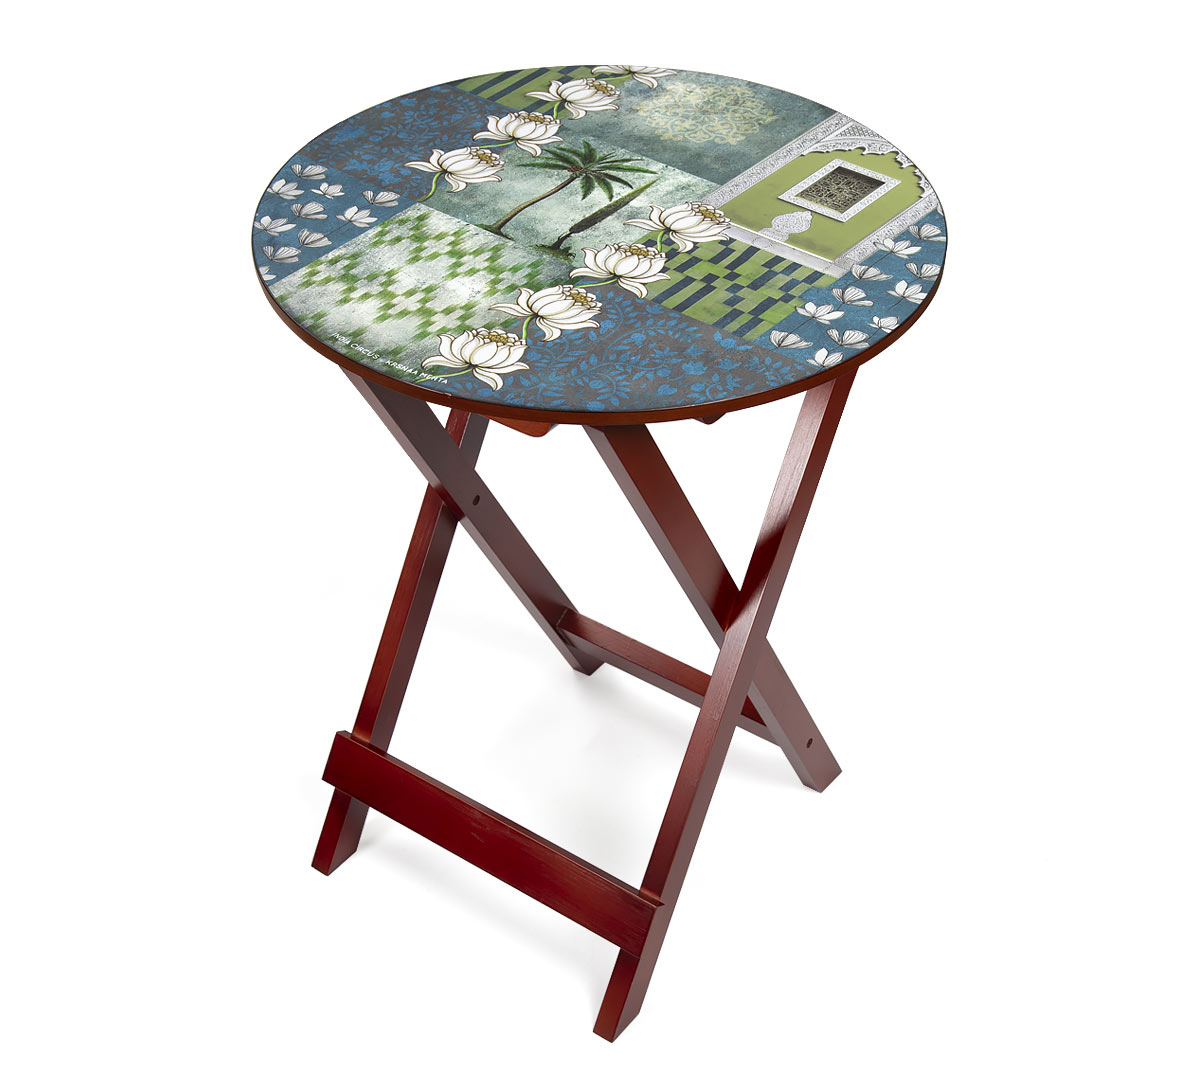 Teal Tiled Lotus Extravaganza Round Side Table